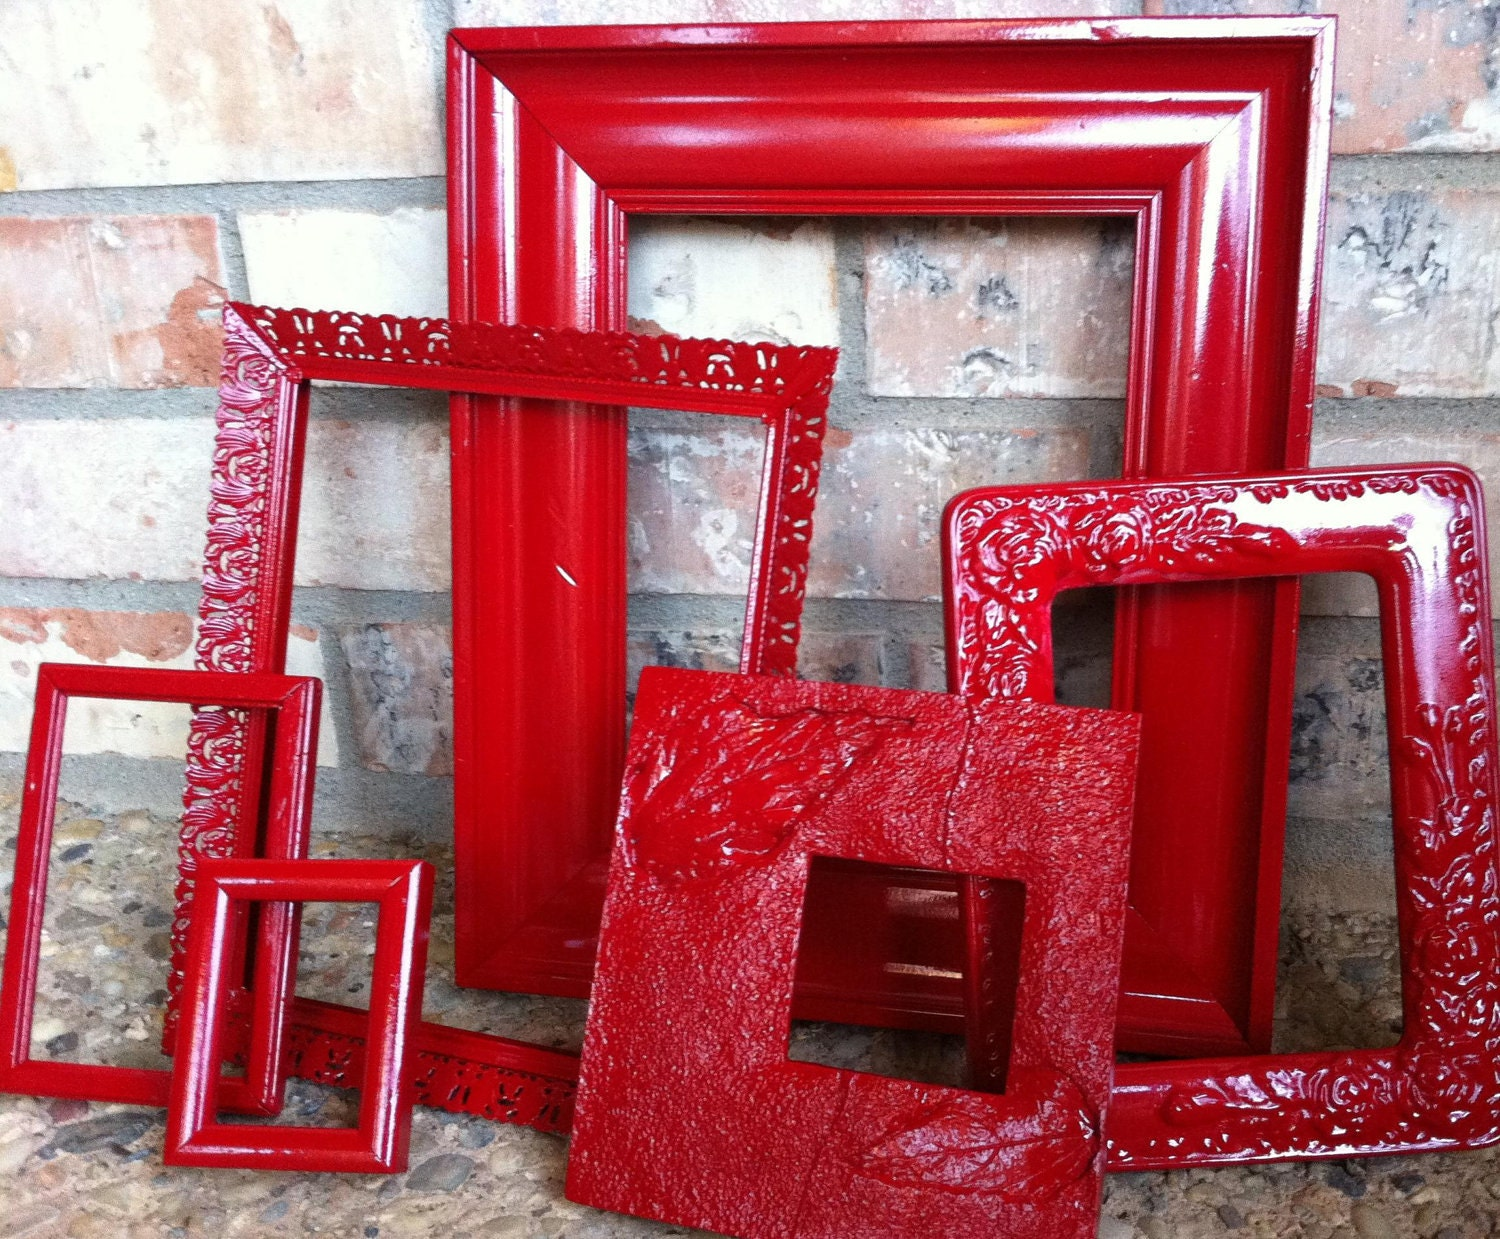 Upcycled Frames Vintage Red Frames Unique Home Decor by FeFiFoFun